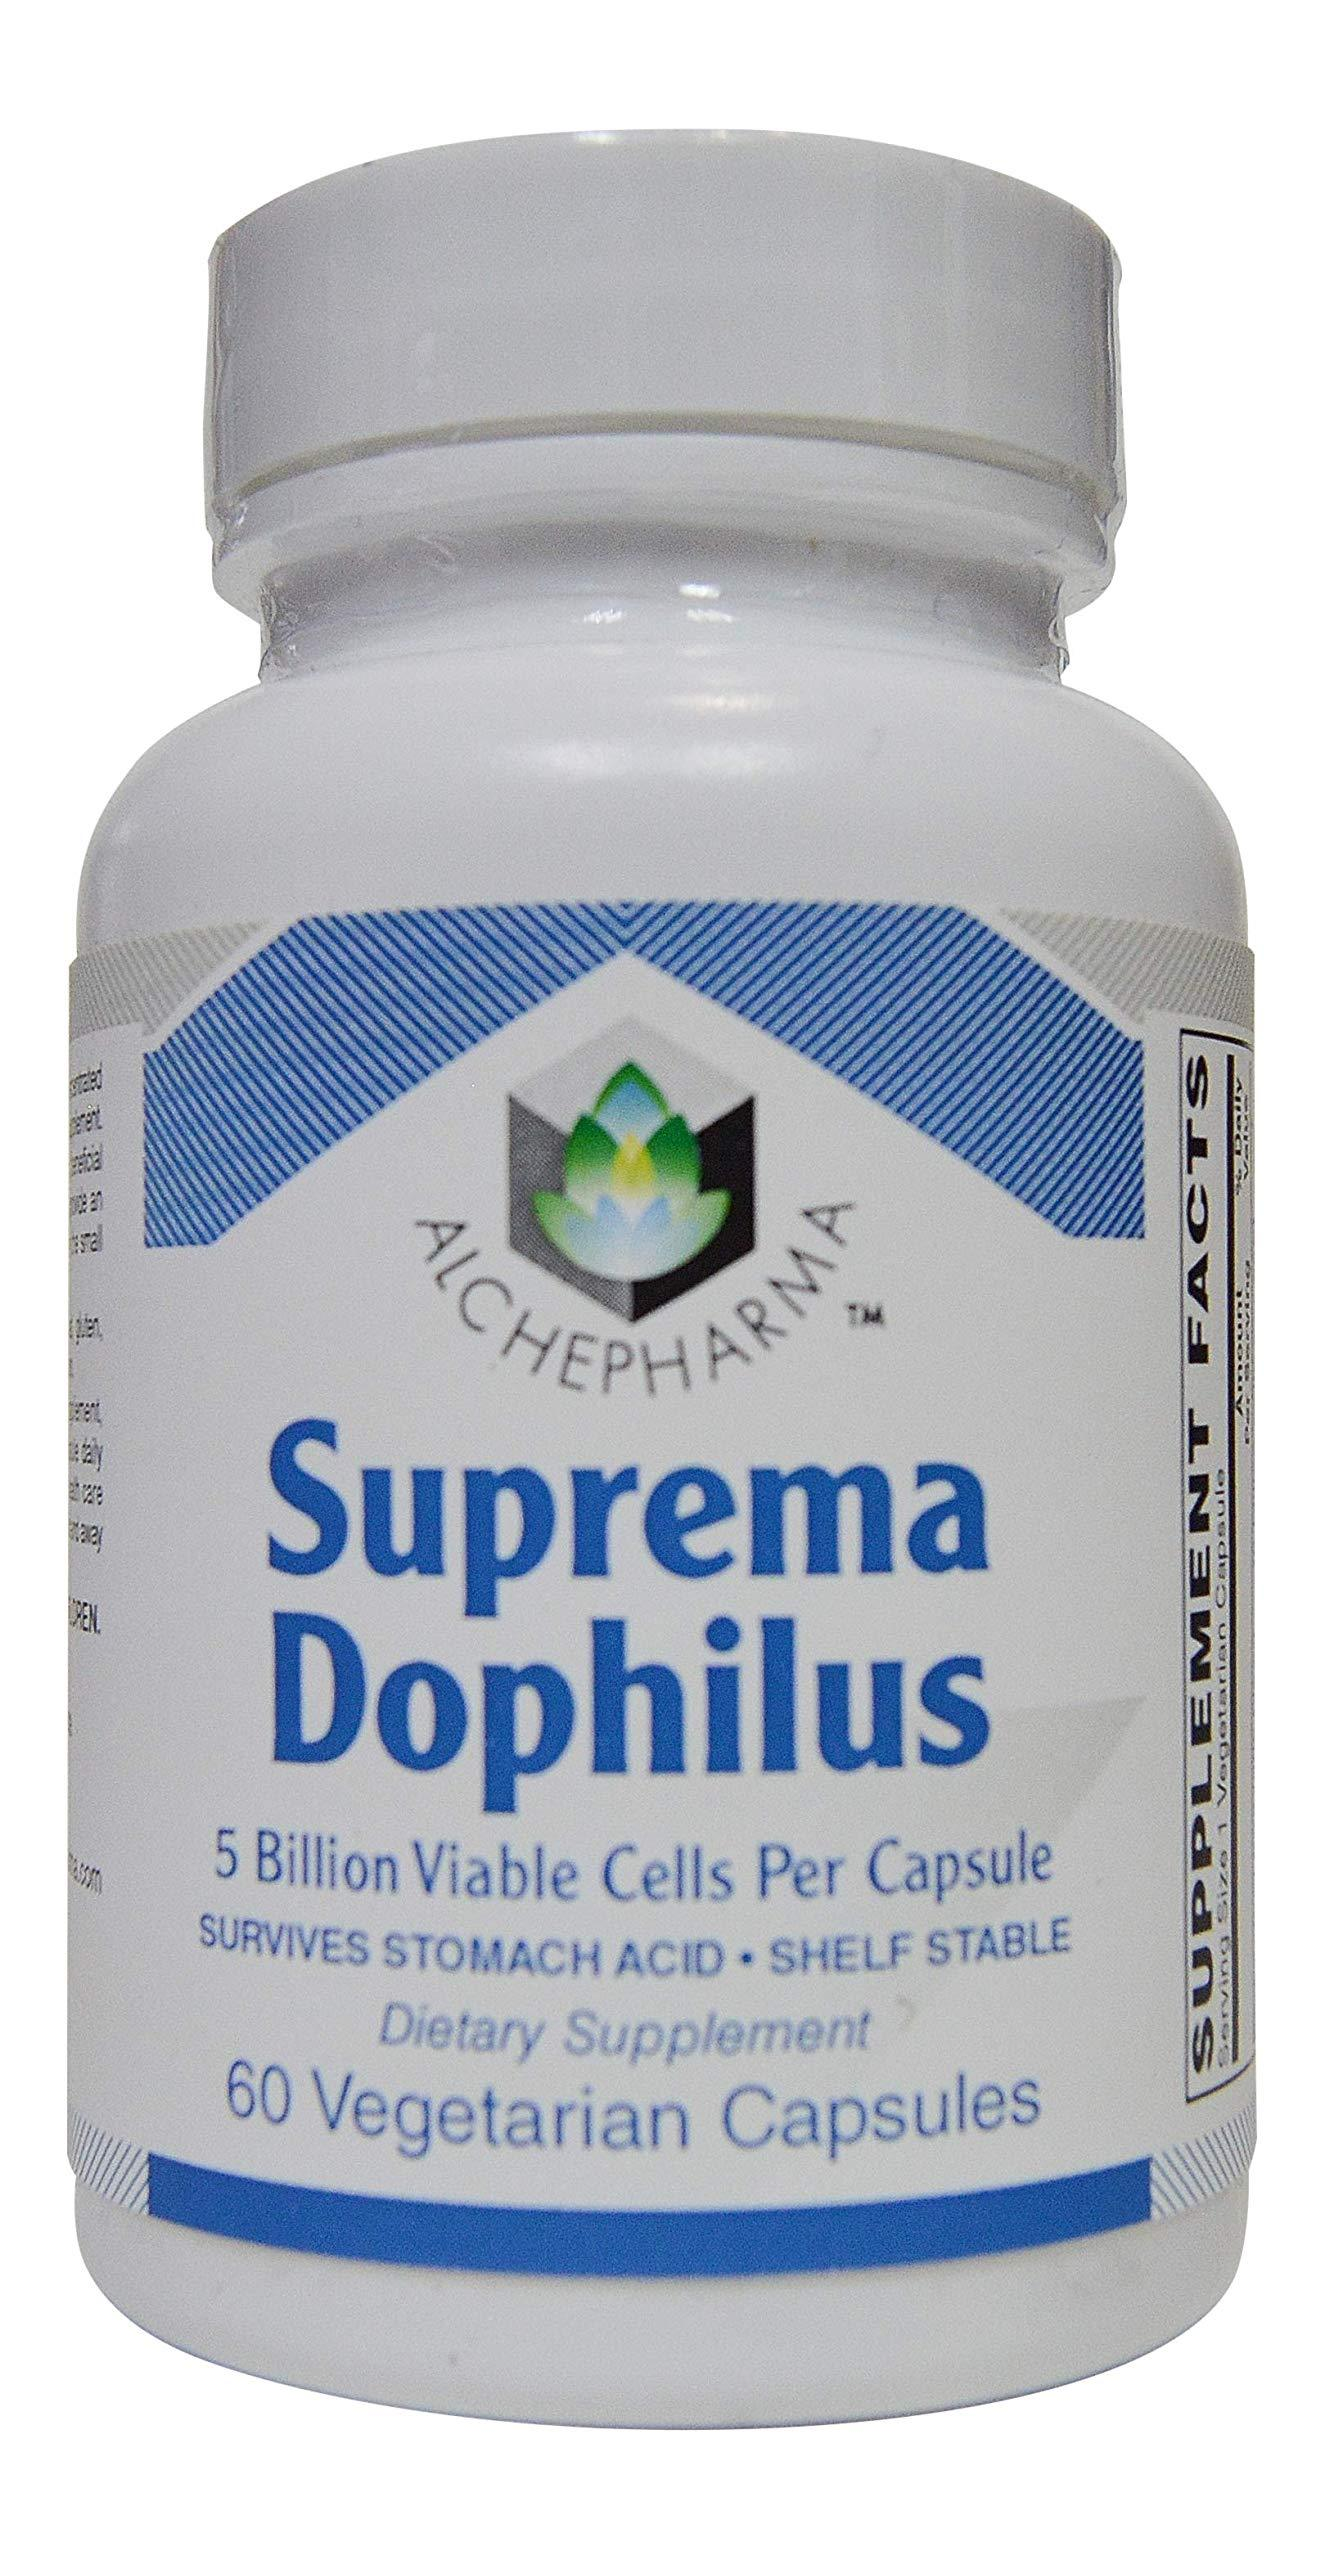 AlchePharma Suprema Dophilus (60 Veg Caps, Stomach Acid Resistant Strains) 60